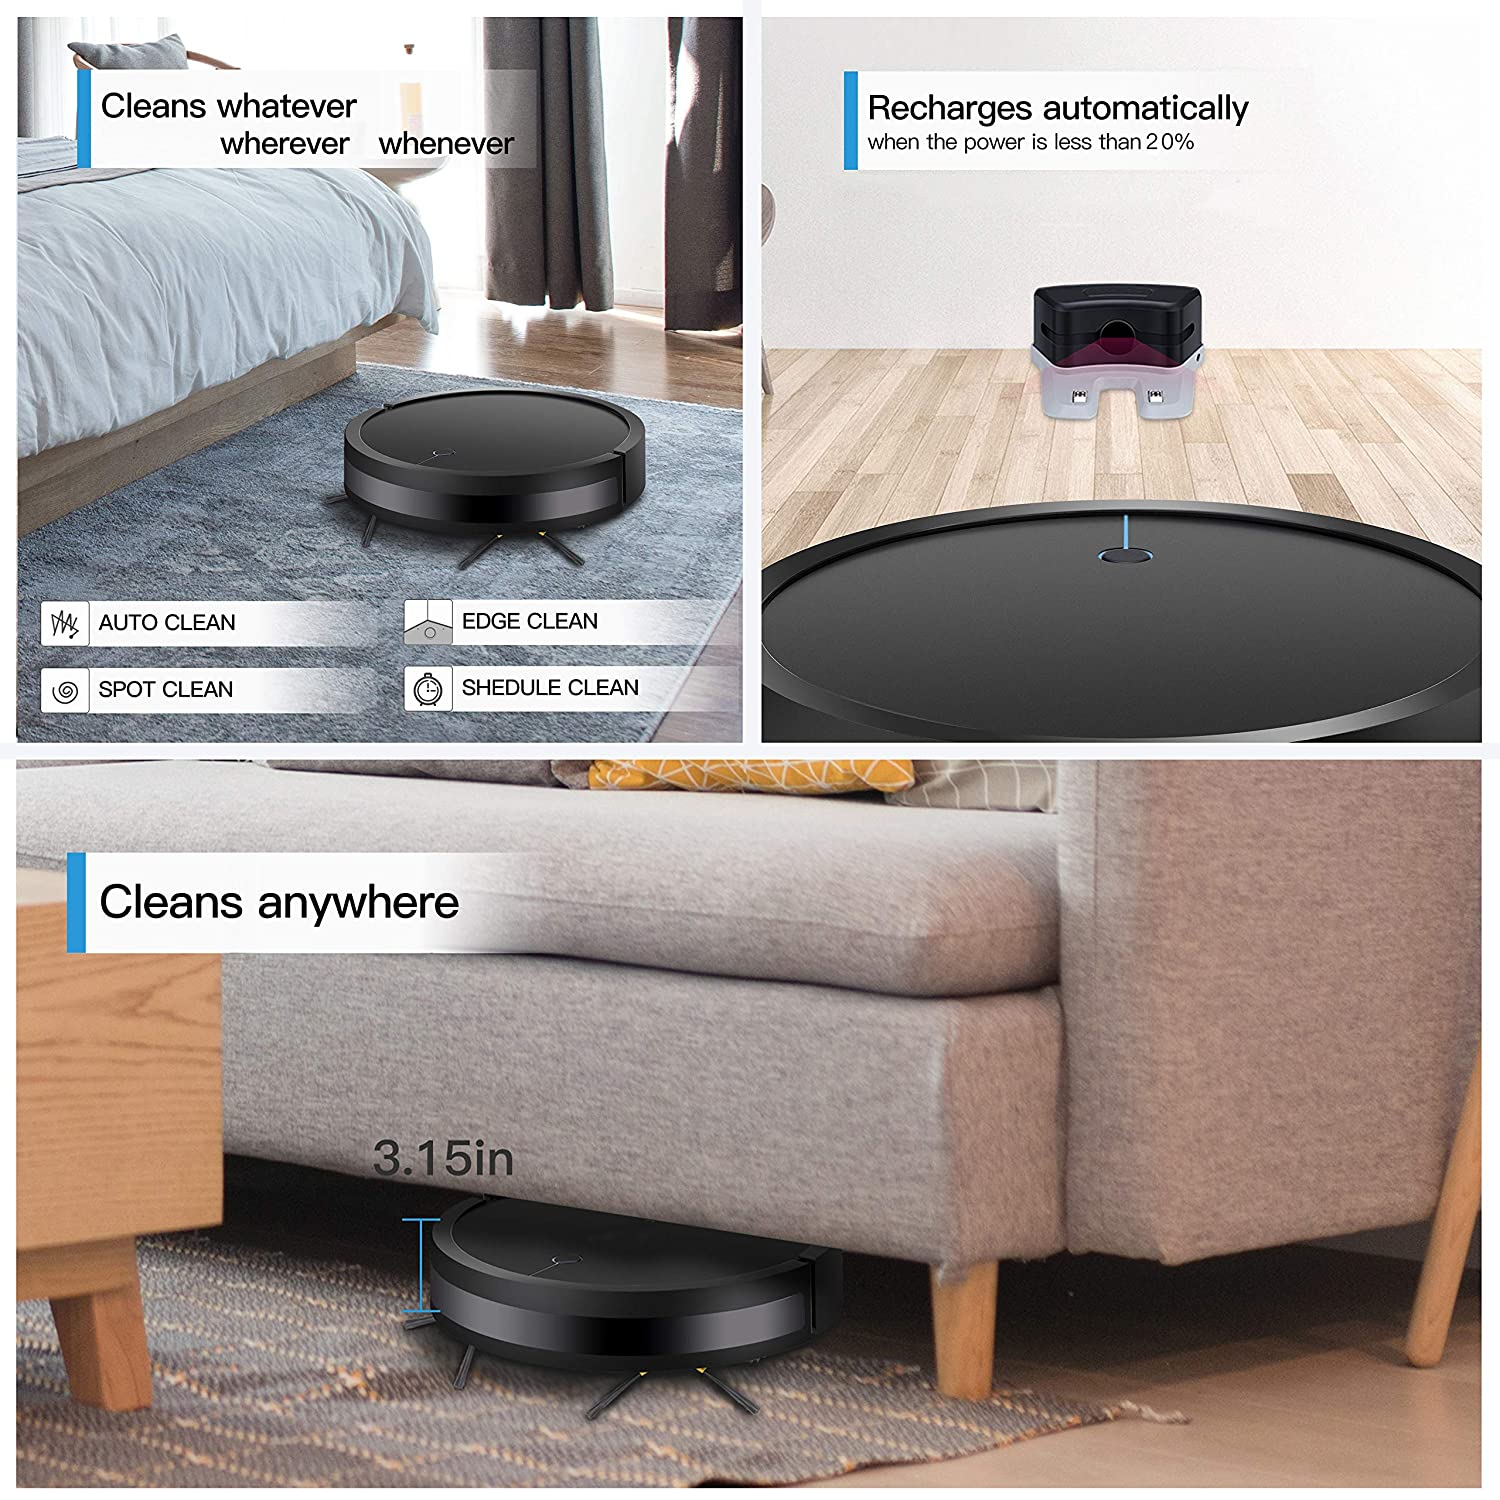 Robot Vacuum Cleaner Auto Charge, Slim Design, 1200Pa Strong Suction, 360 Smart Sensor Protection, Multiple Cleaning Modes Handles Hard Floors and Carpets Ideal for Homes 15.12 3.15 , Black